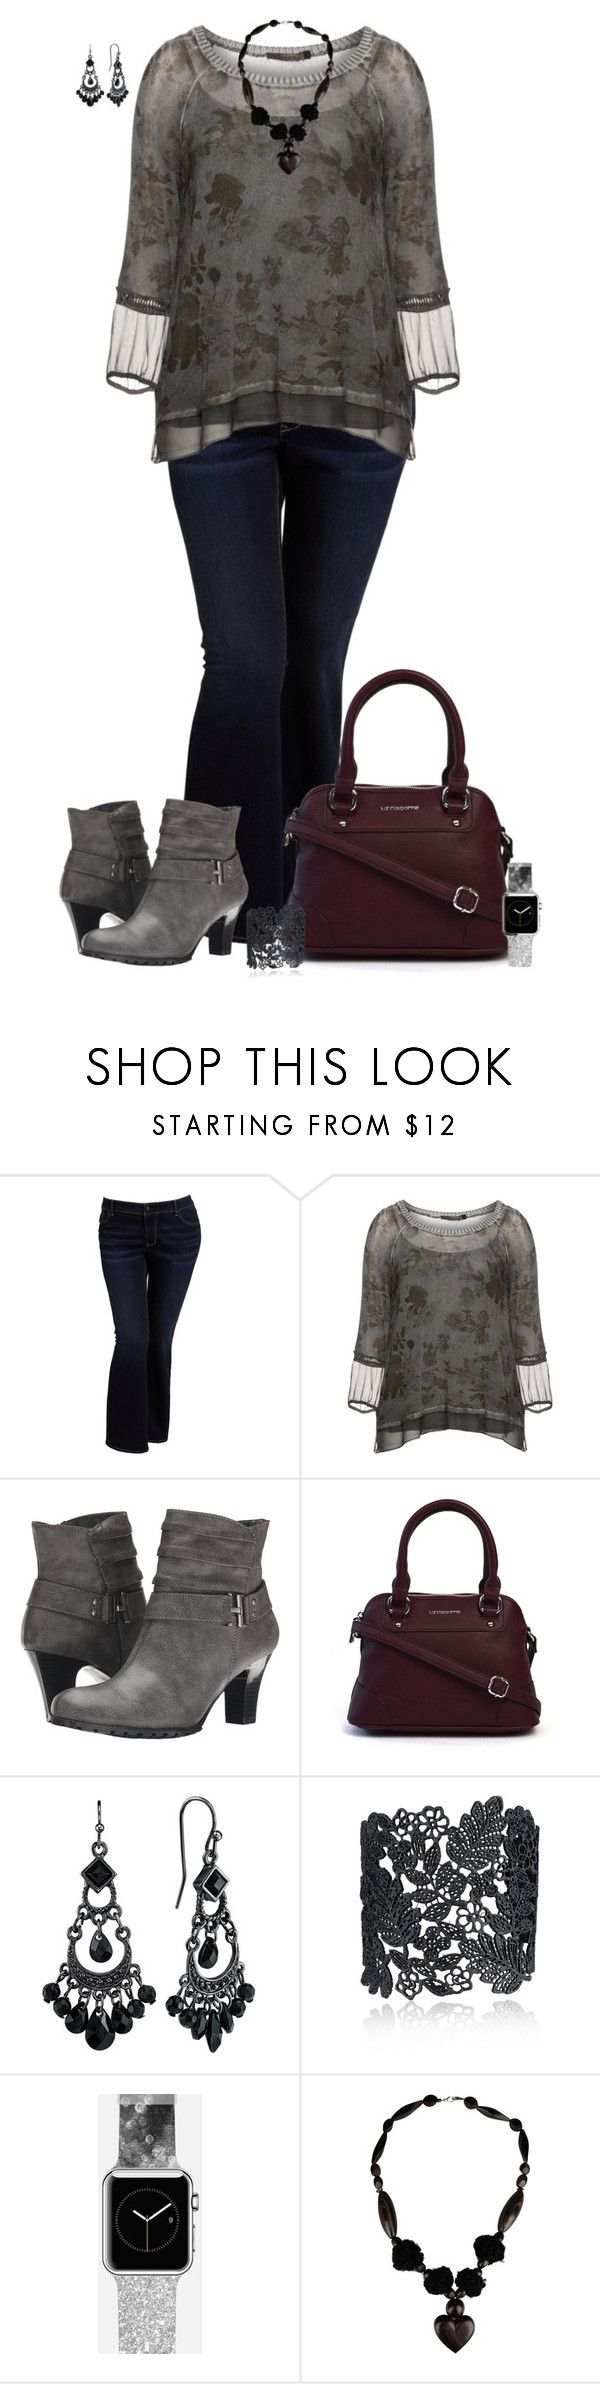 Plus Size - Date Night by elise1114 on Polyvore featuring Nostalgia, Old Navy, Aerosoles, Liz Claiborne, Casetify and 1928